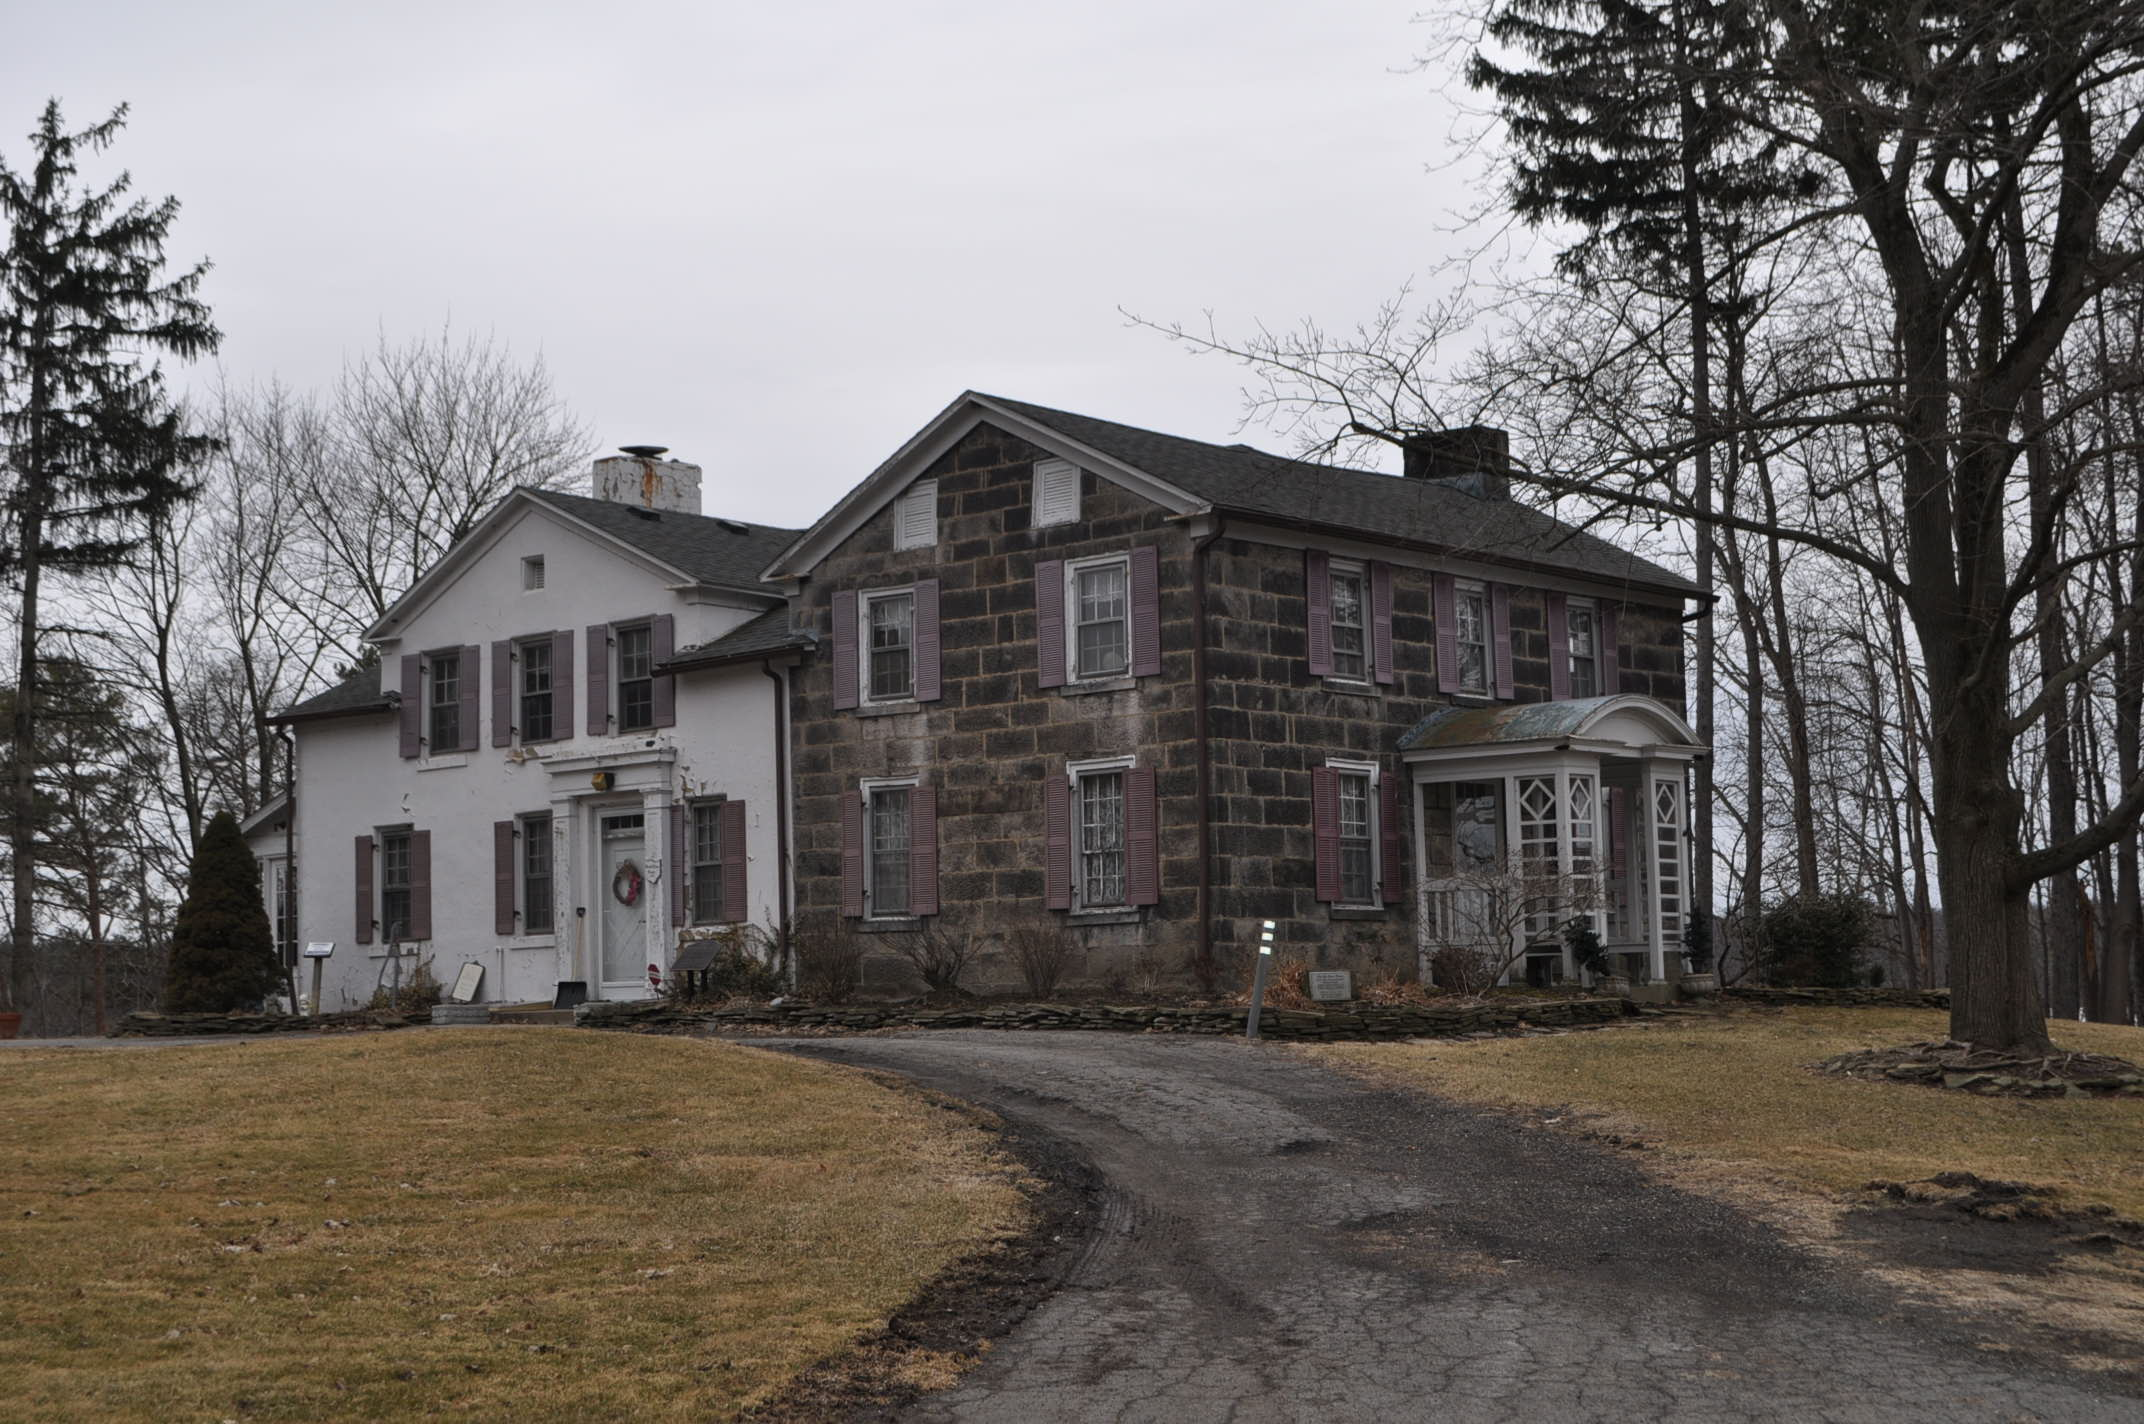 The Judge William Shaw Anderson house, also known as the Strock Stone House, was built in 1831 of huge blocks of sandstone, some weighing as much as 750 pounds, quarried from Stony Ridge on South Turner Road in Austintown.